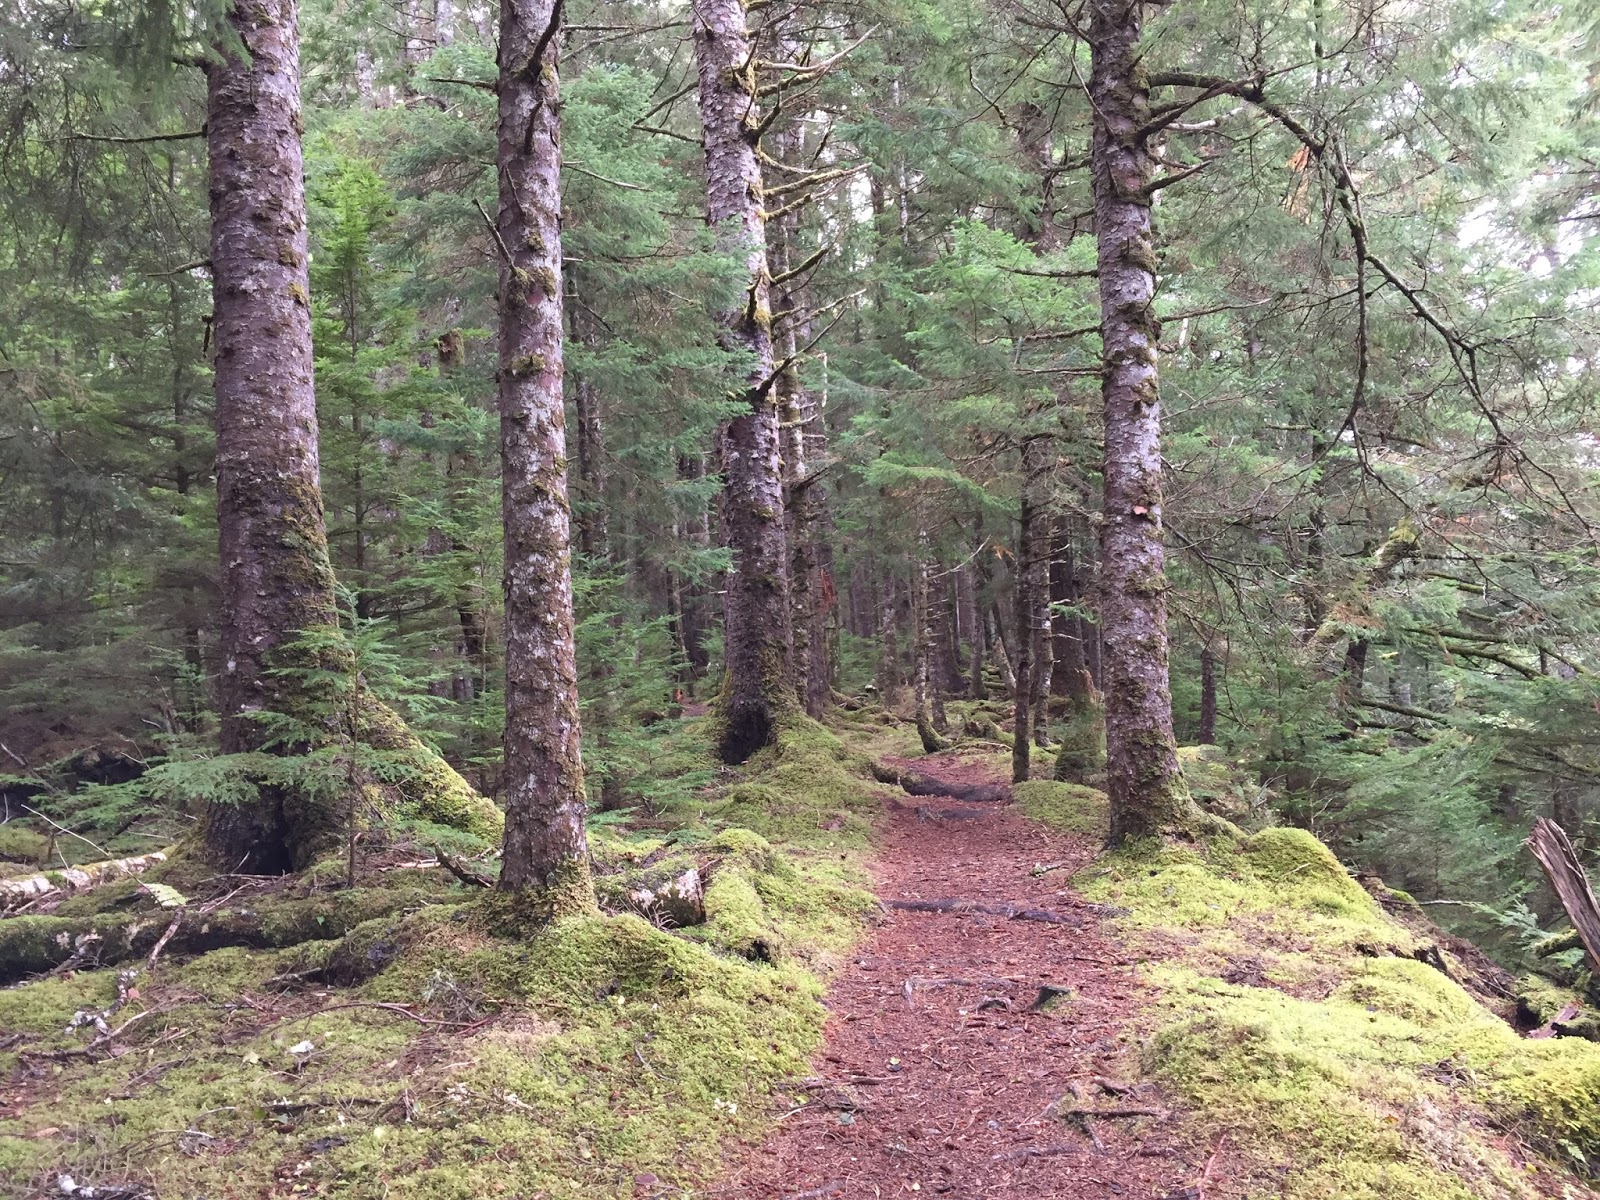 It is a magical walk among the trees and springy path